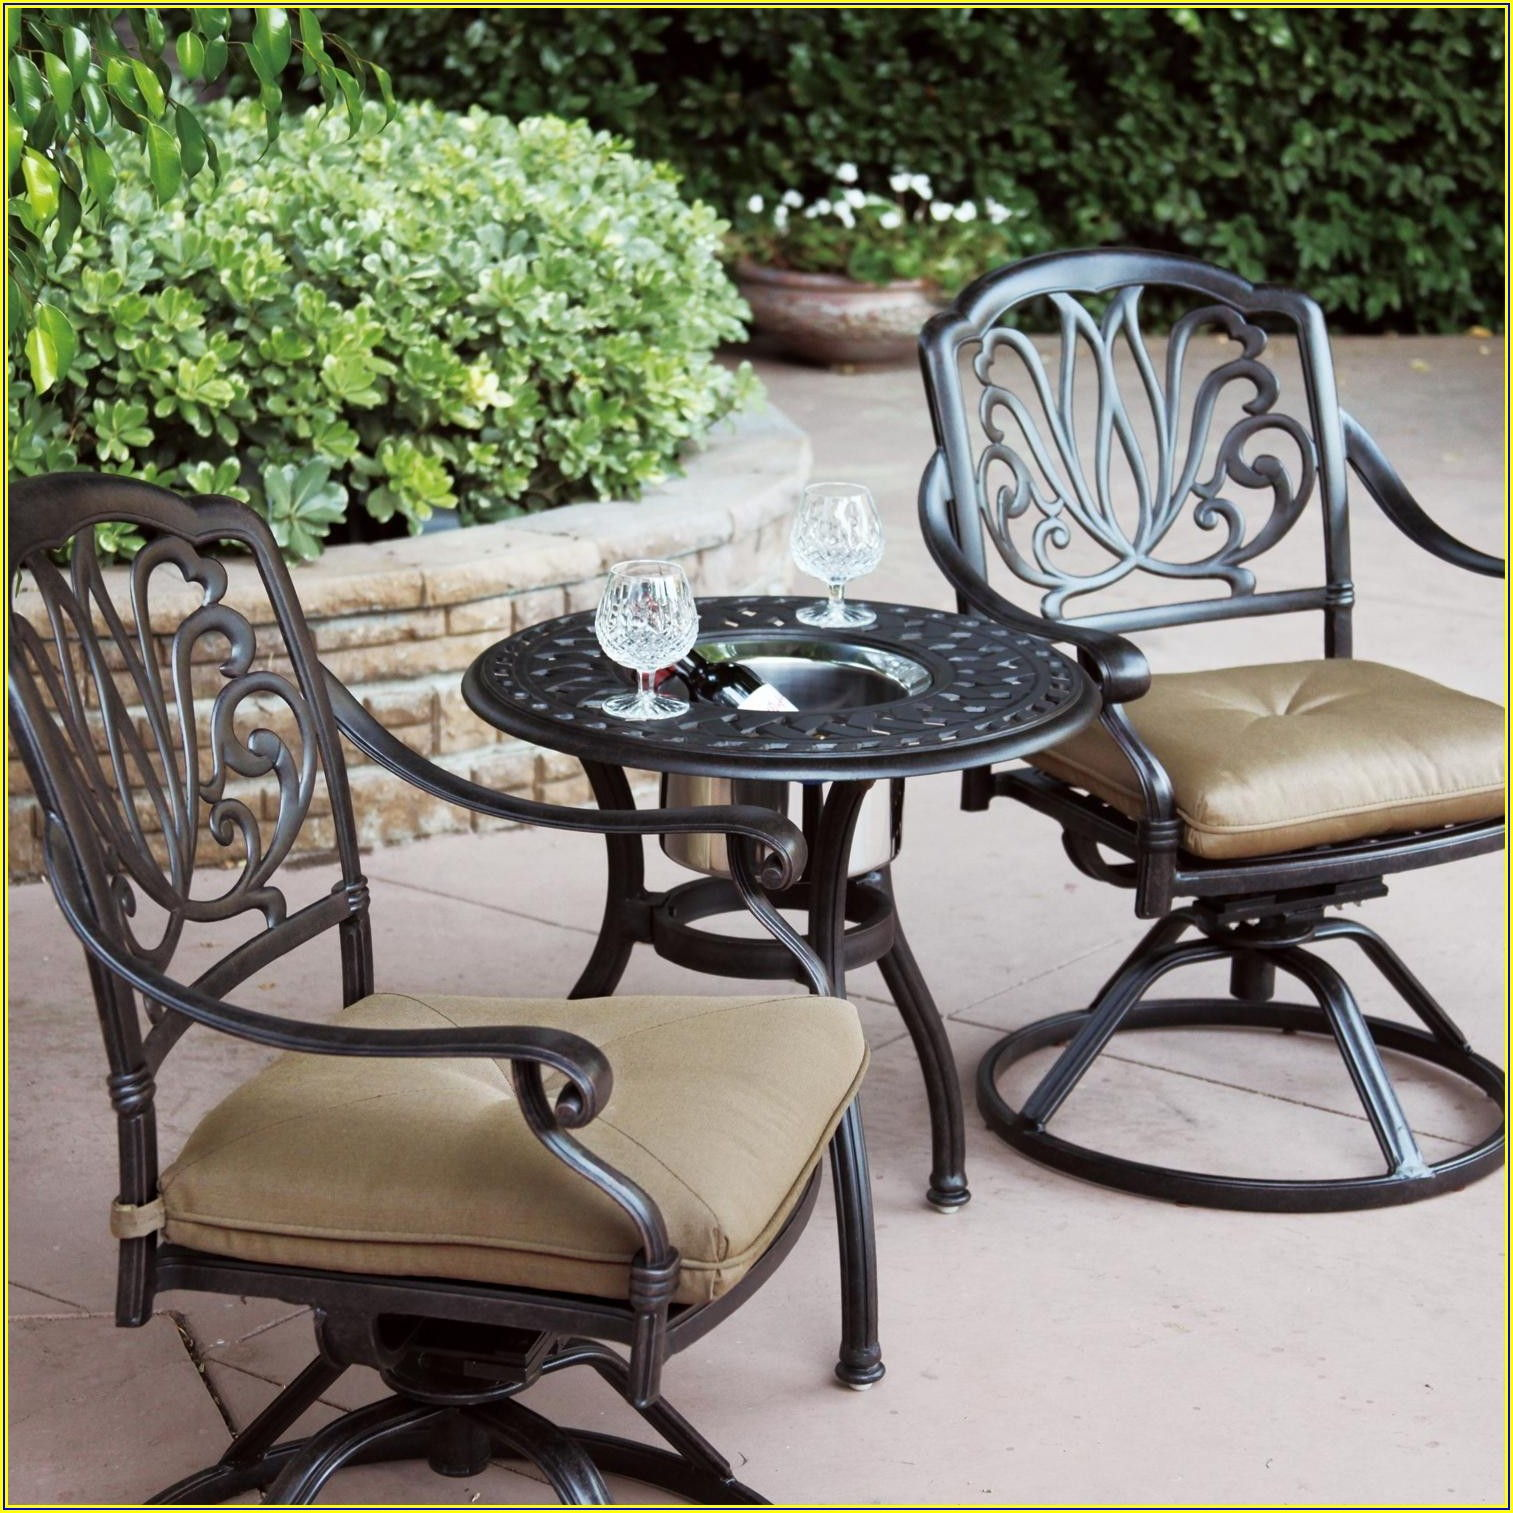 Patio Table With Swivel Chairs